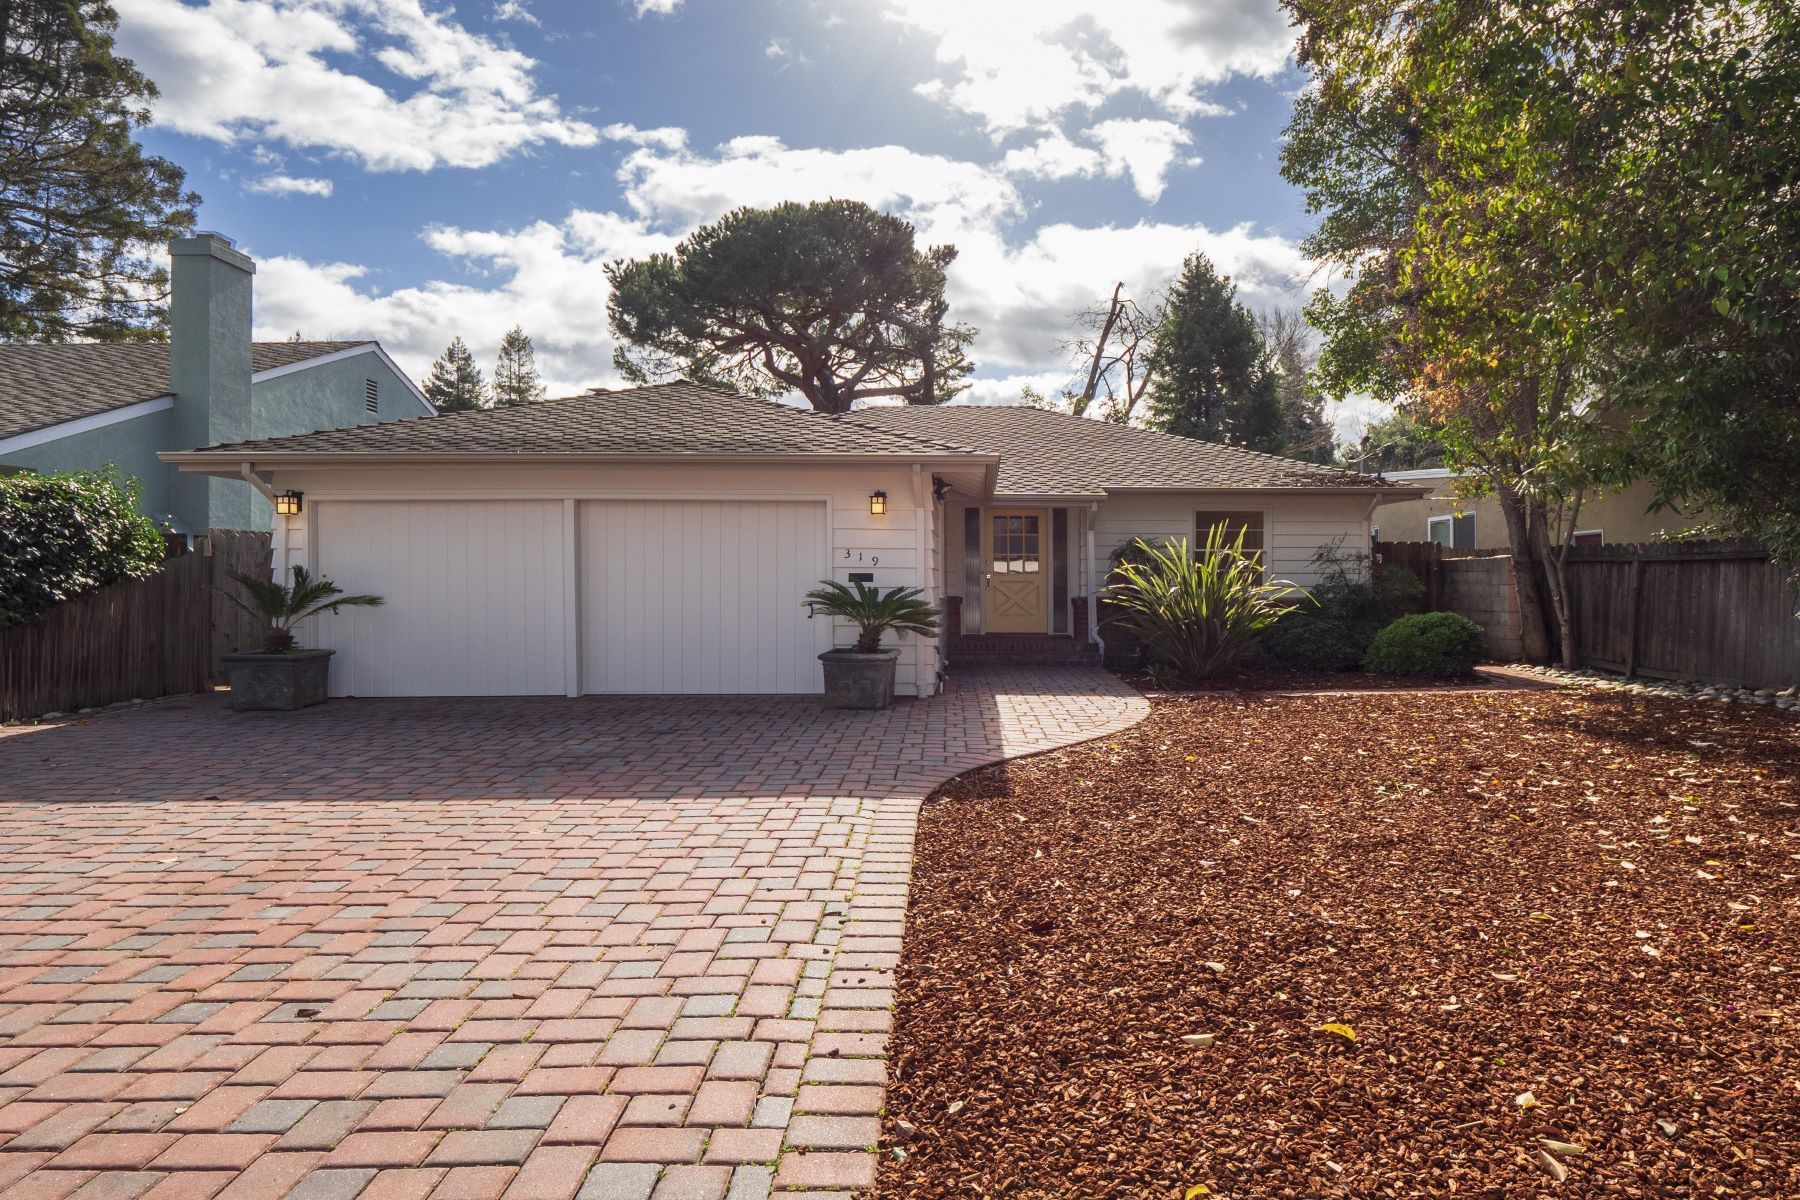 Single Family Home for Active at 319 Chester Street 319 Chester Street Menlo Park, California 94025 United States